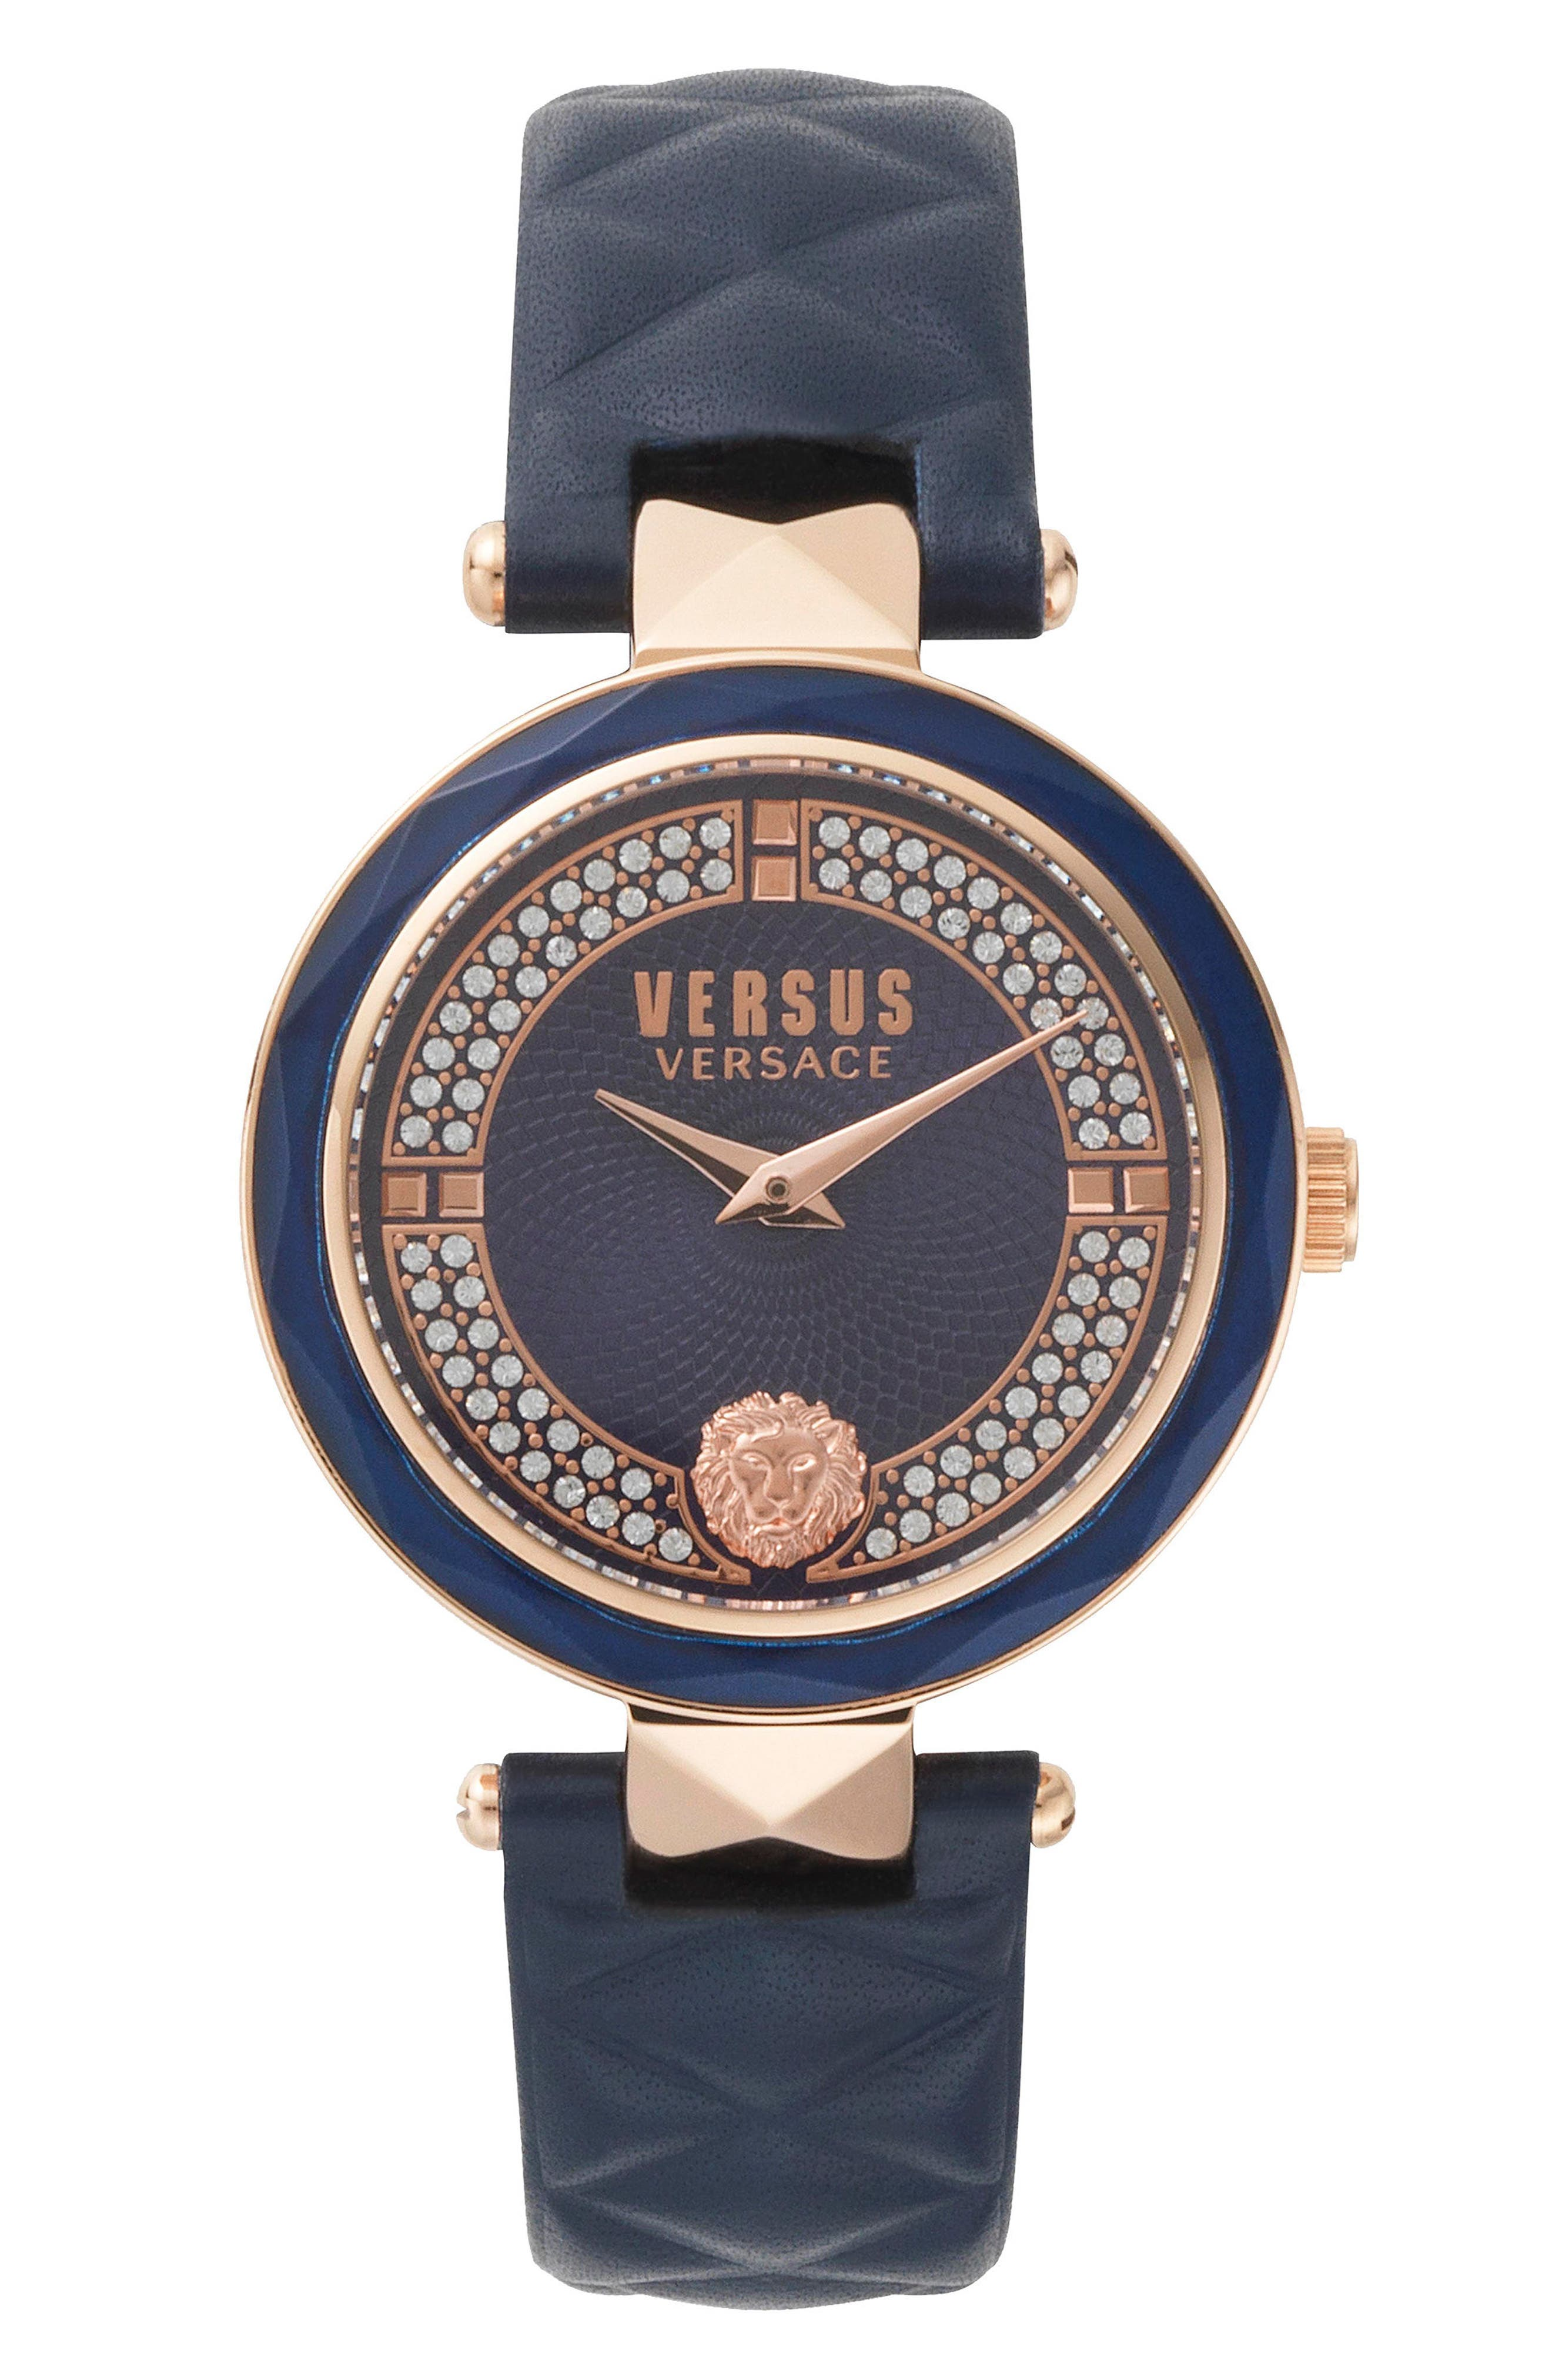 VERSUS by Versace Covent Garden Crystal Accent Leather Strap Watch, 36mm,                             Main thumbnail 1, color,                             Blue/ Rose Gold